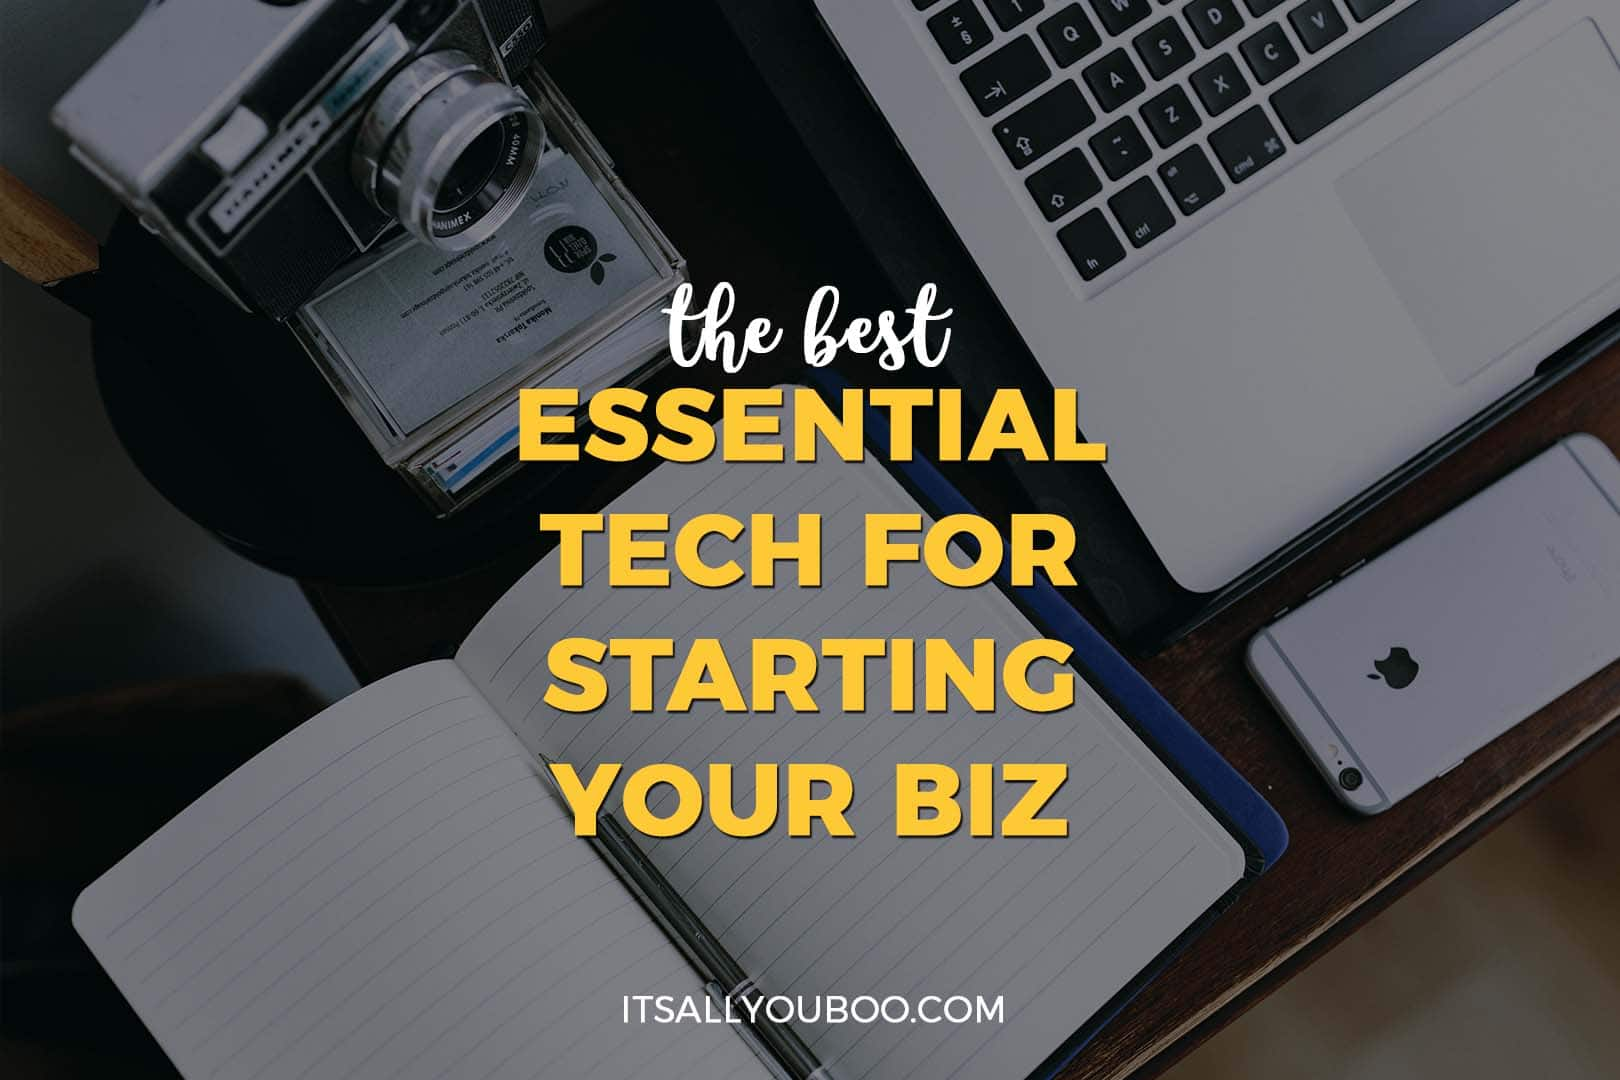 The Best Essential Tech for Starting Your Biz